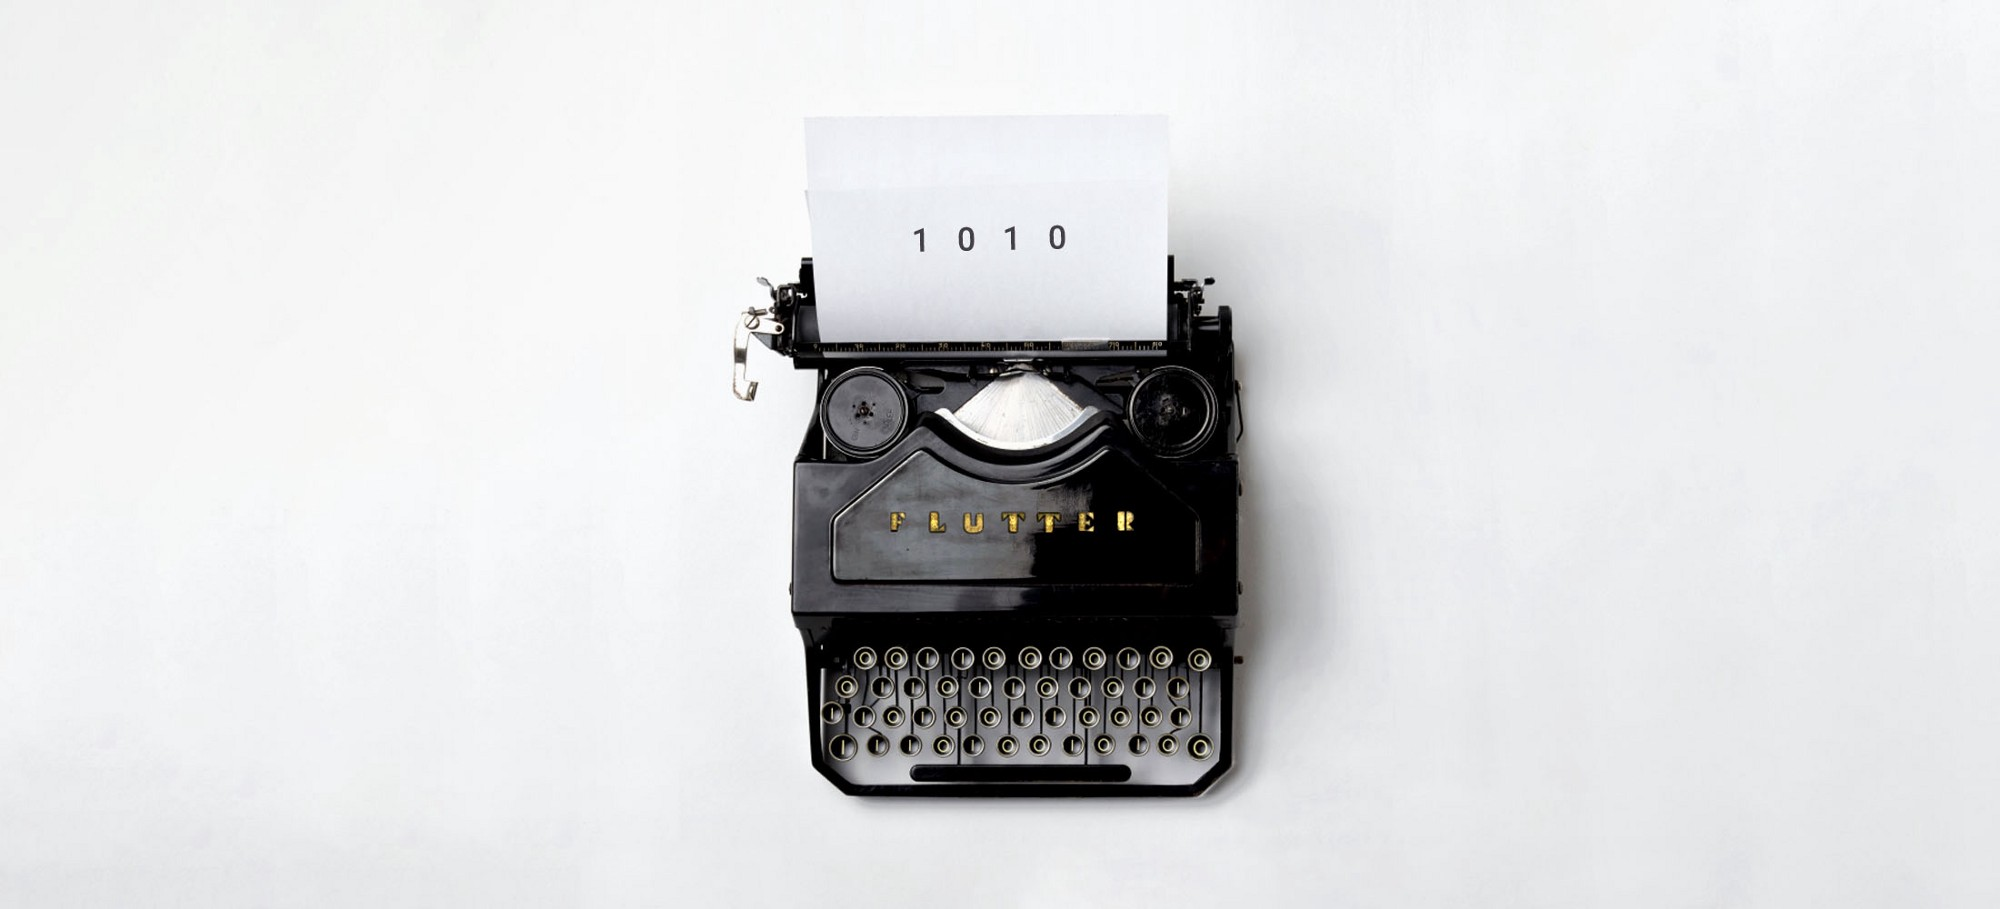 Flutter typewriter with 1010 typed on a white paper